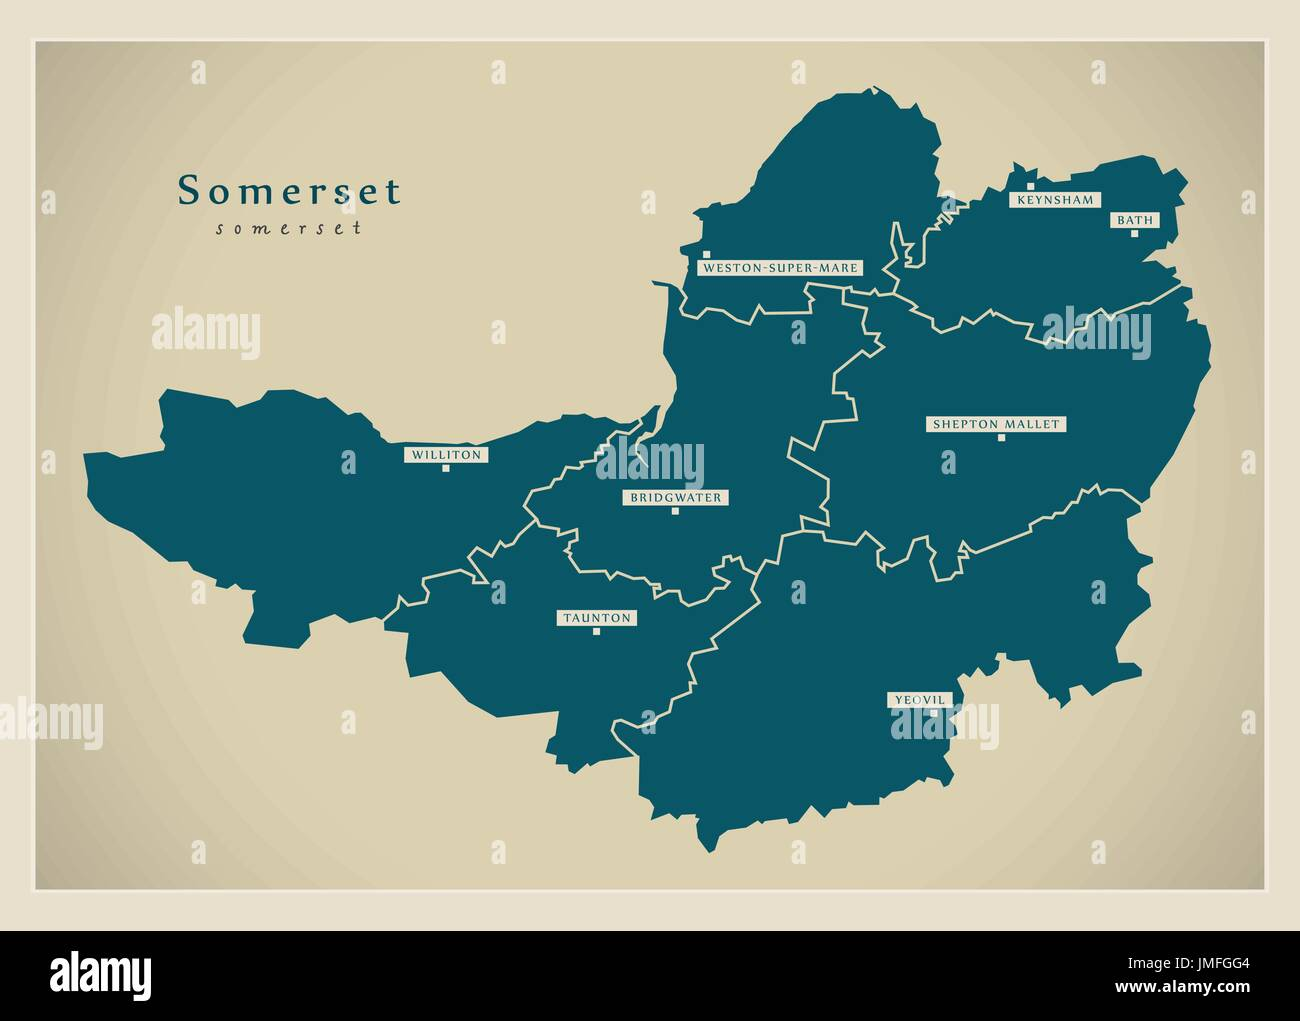 Map Of England Districts.Modern Map Somerset County With Cities And Districts England Uk